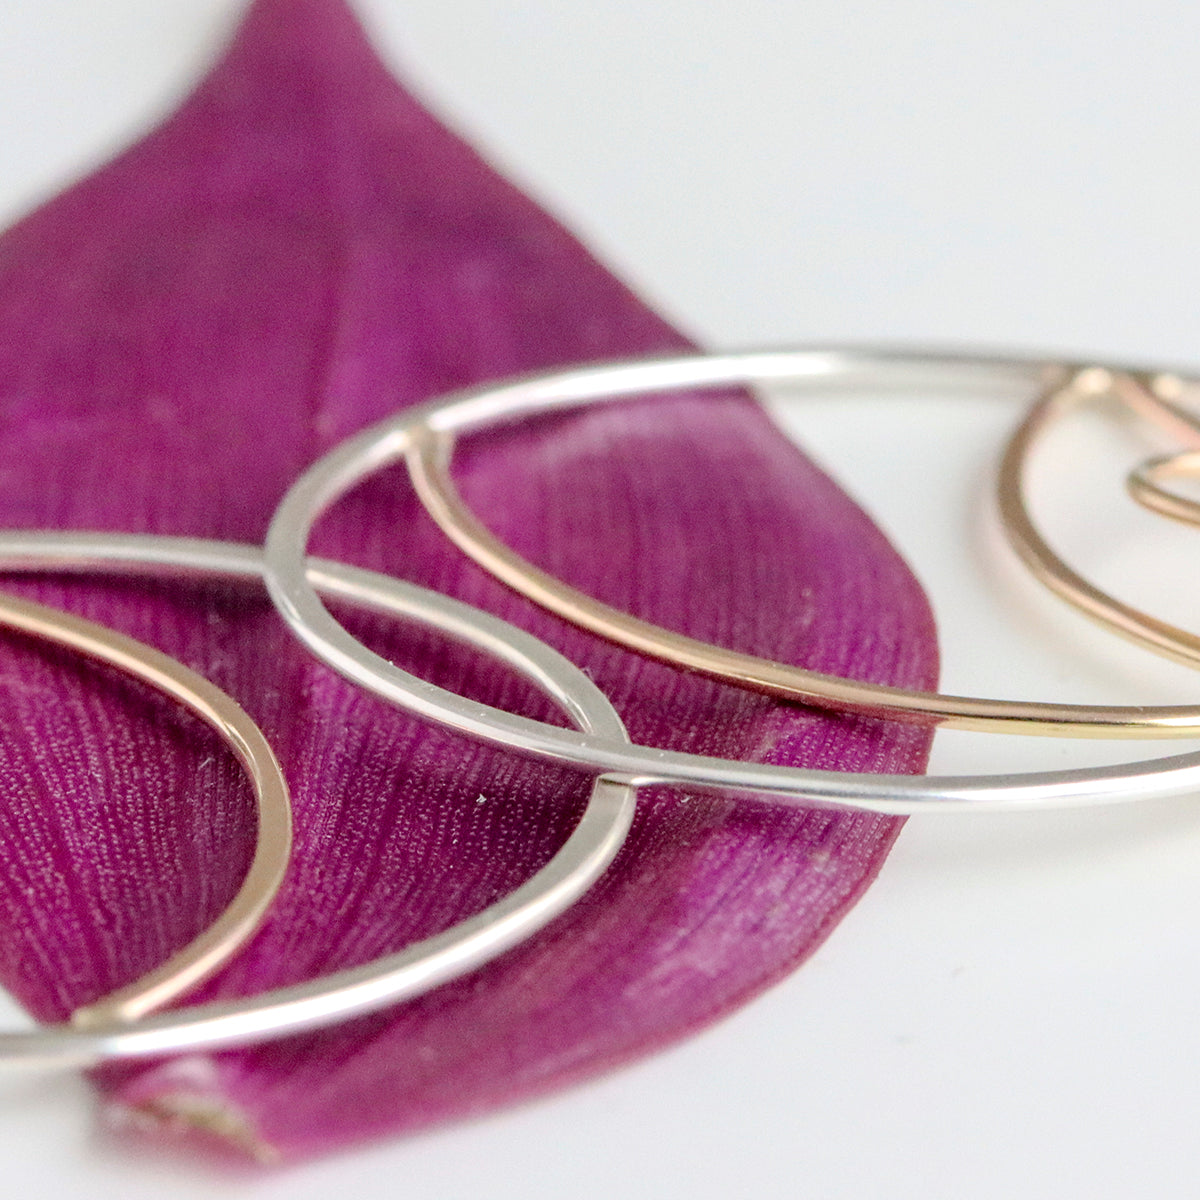 Rebecca Haas Jewelry Spring Collection - Snowmelt